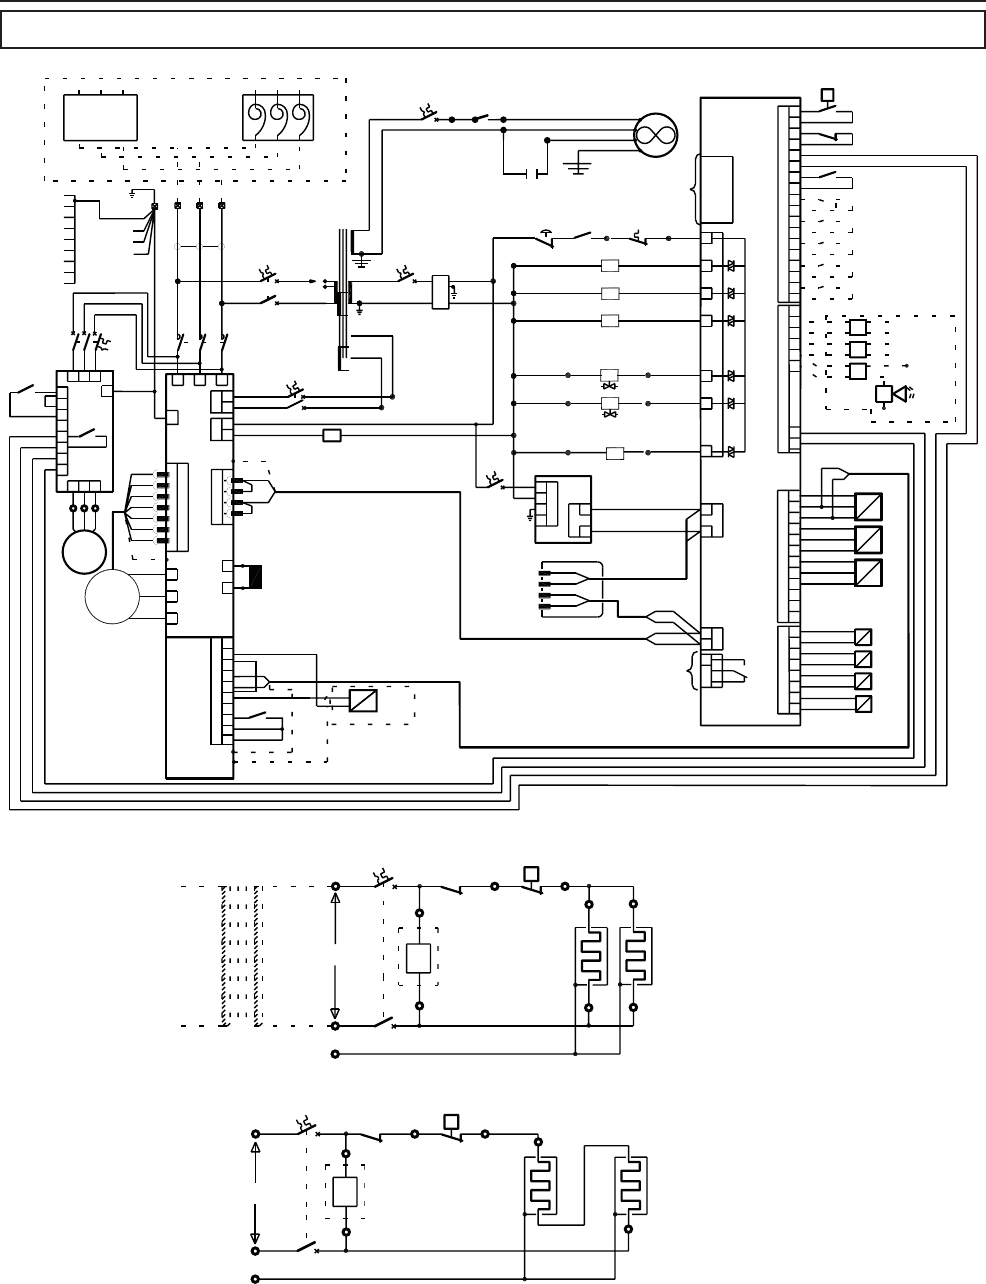 air pressor single phase wiring diagram